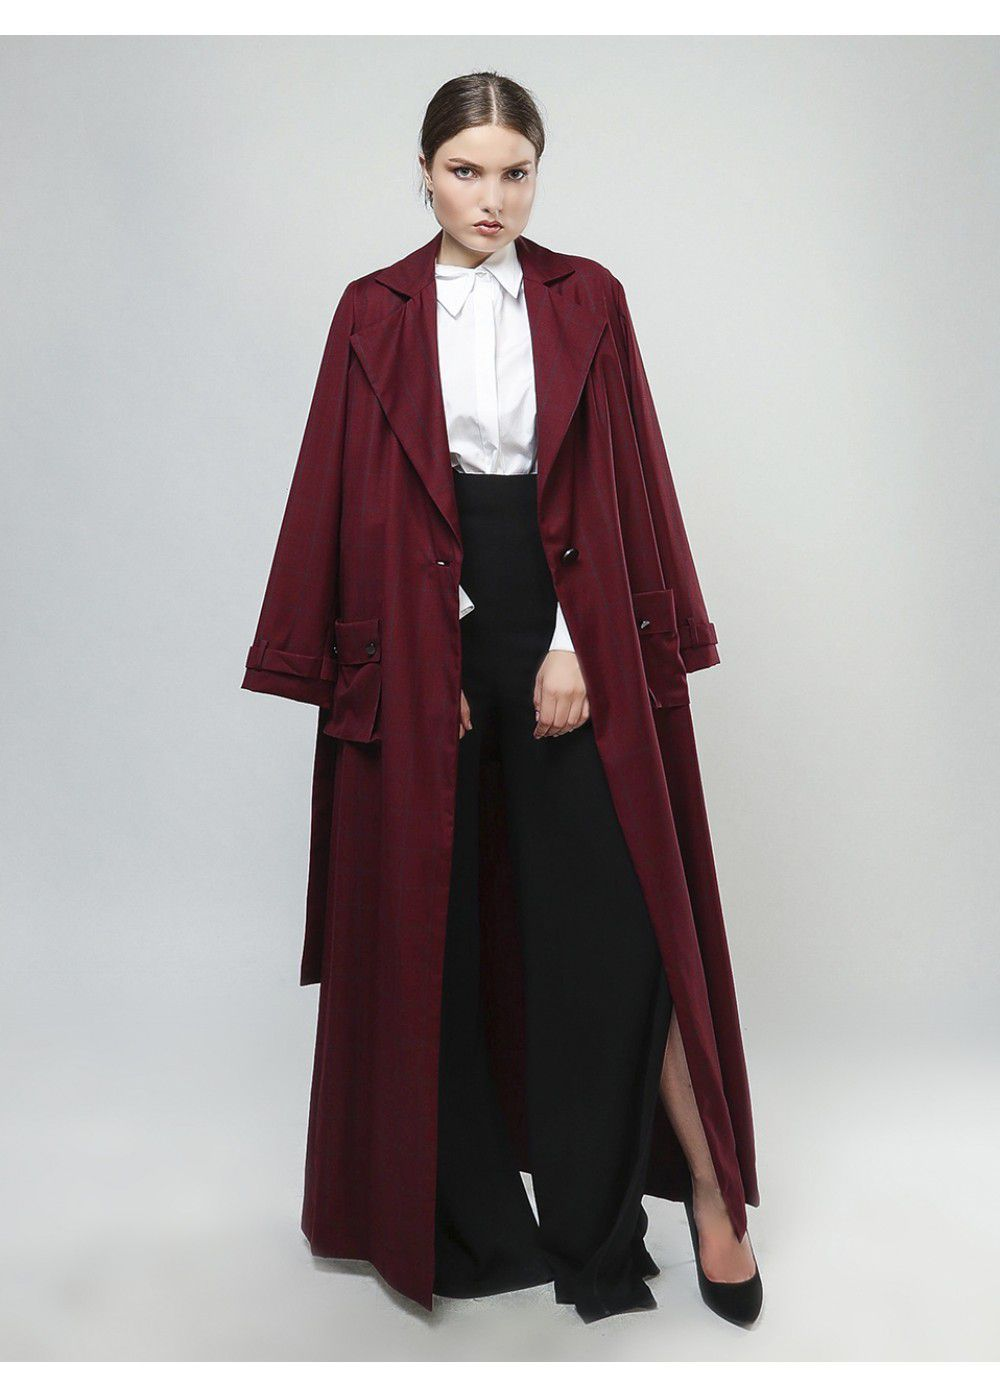 Vatanika Trench Coat in Burgundy